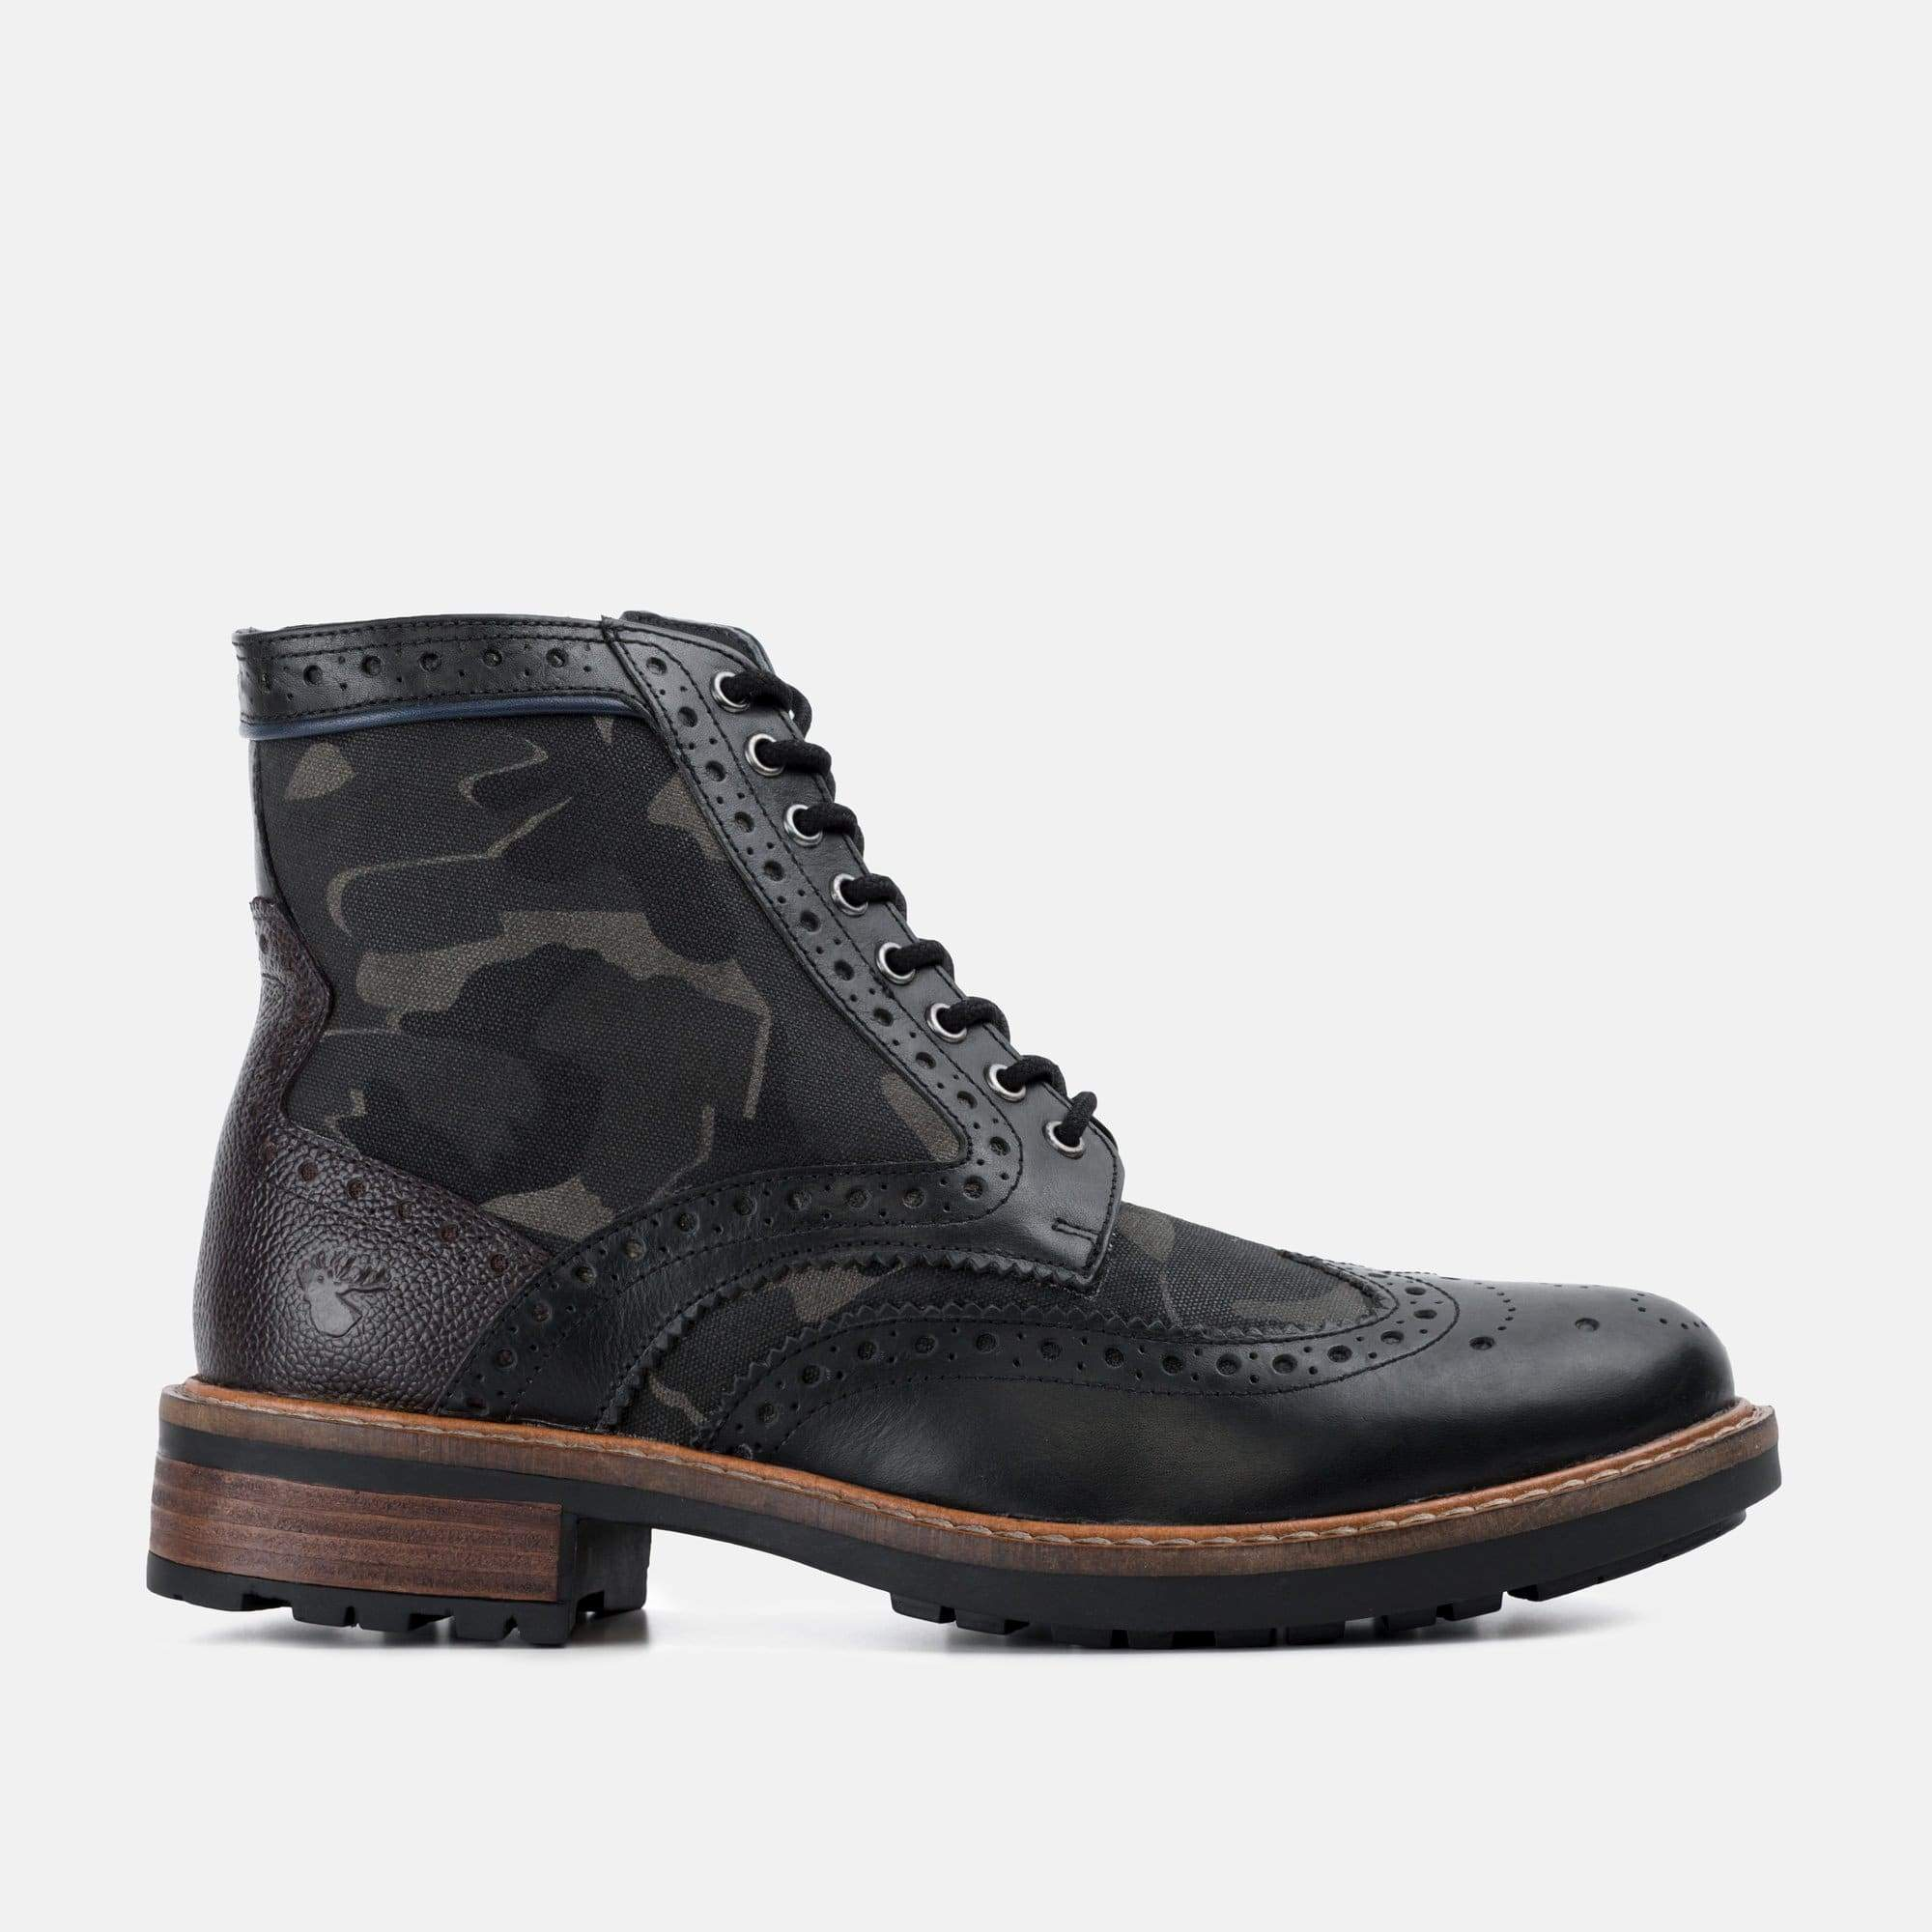 Goodwin Smith Footwear Sherwood Camo Black Leather Brogue Boot